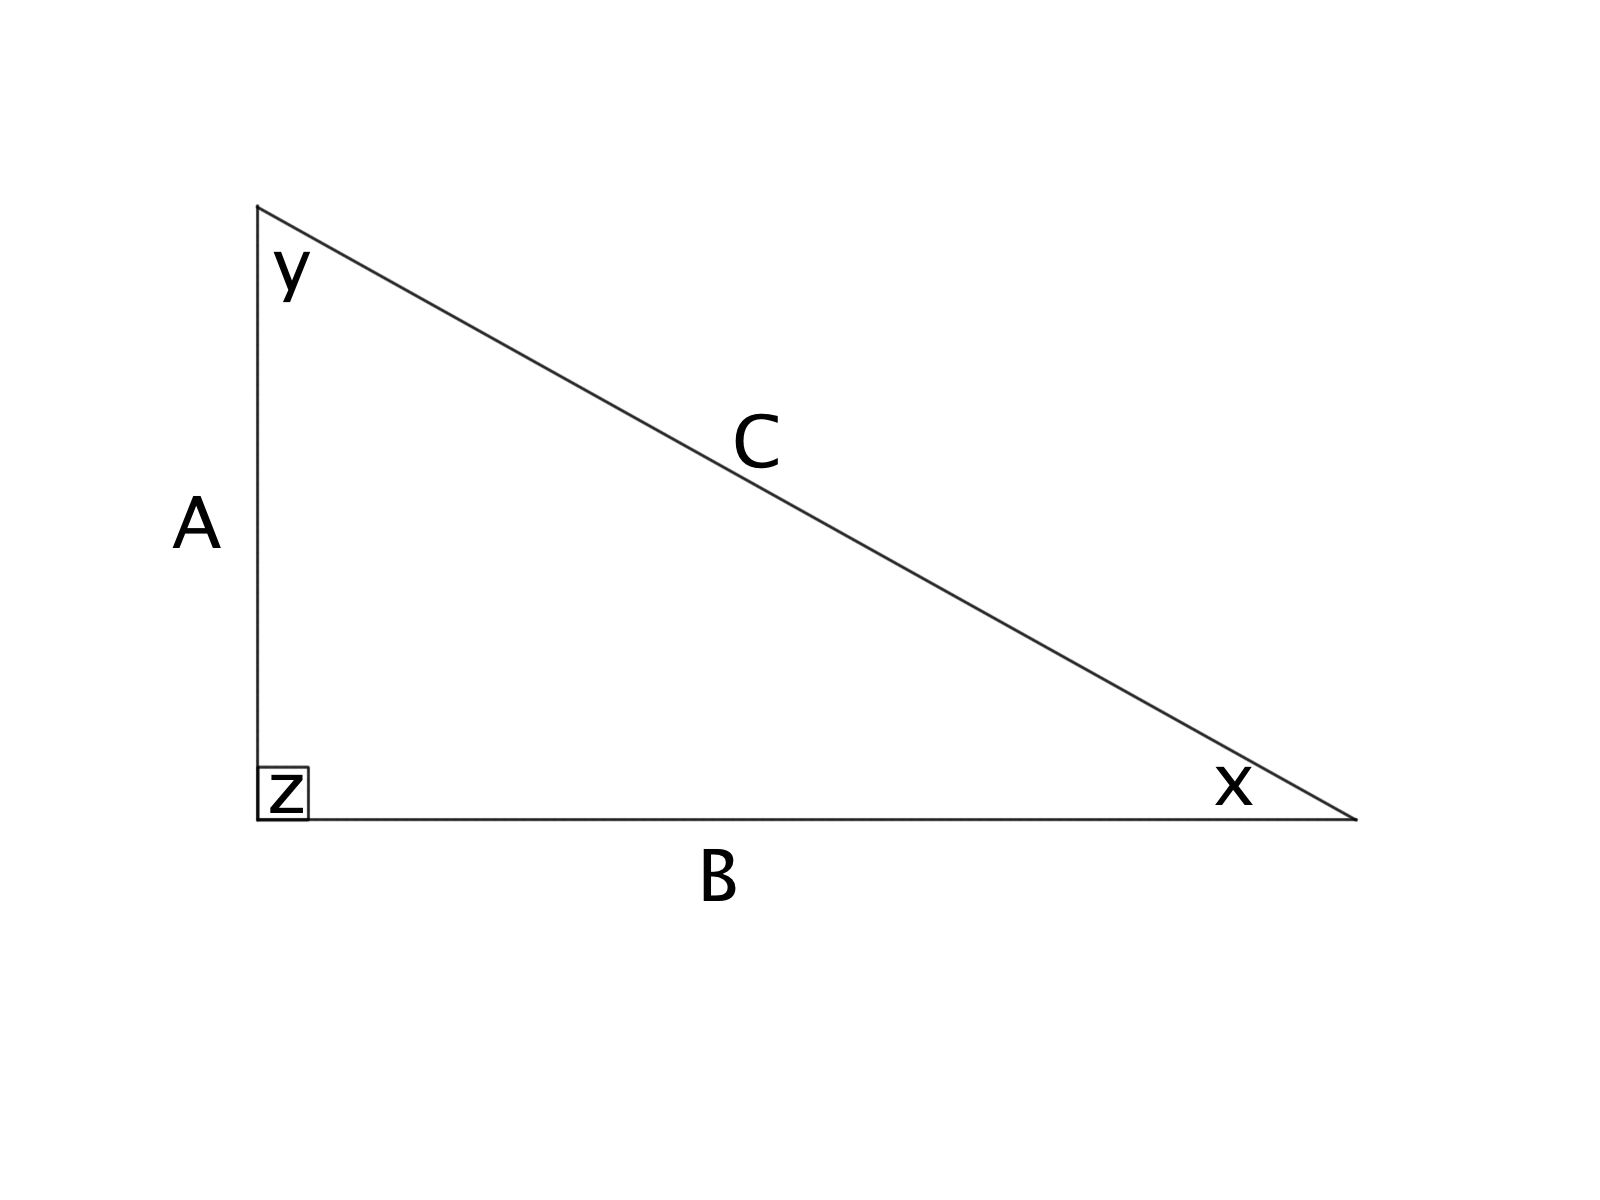 Example Question #2 : How To Find The Area Of A Right Triangle